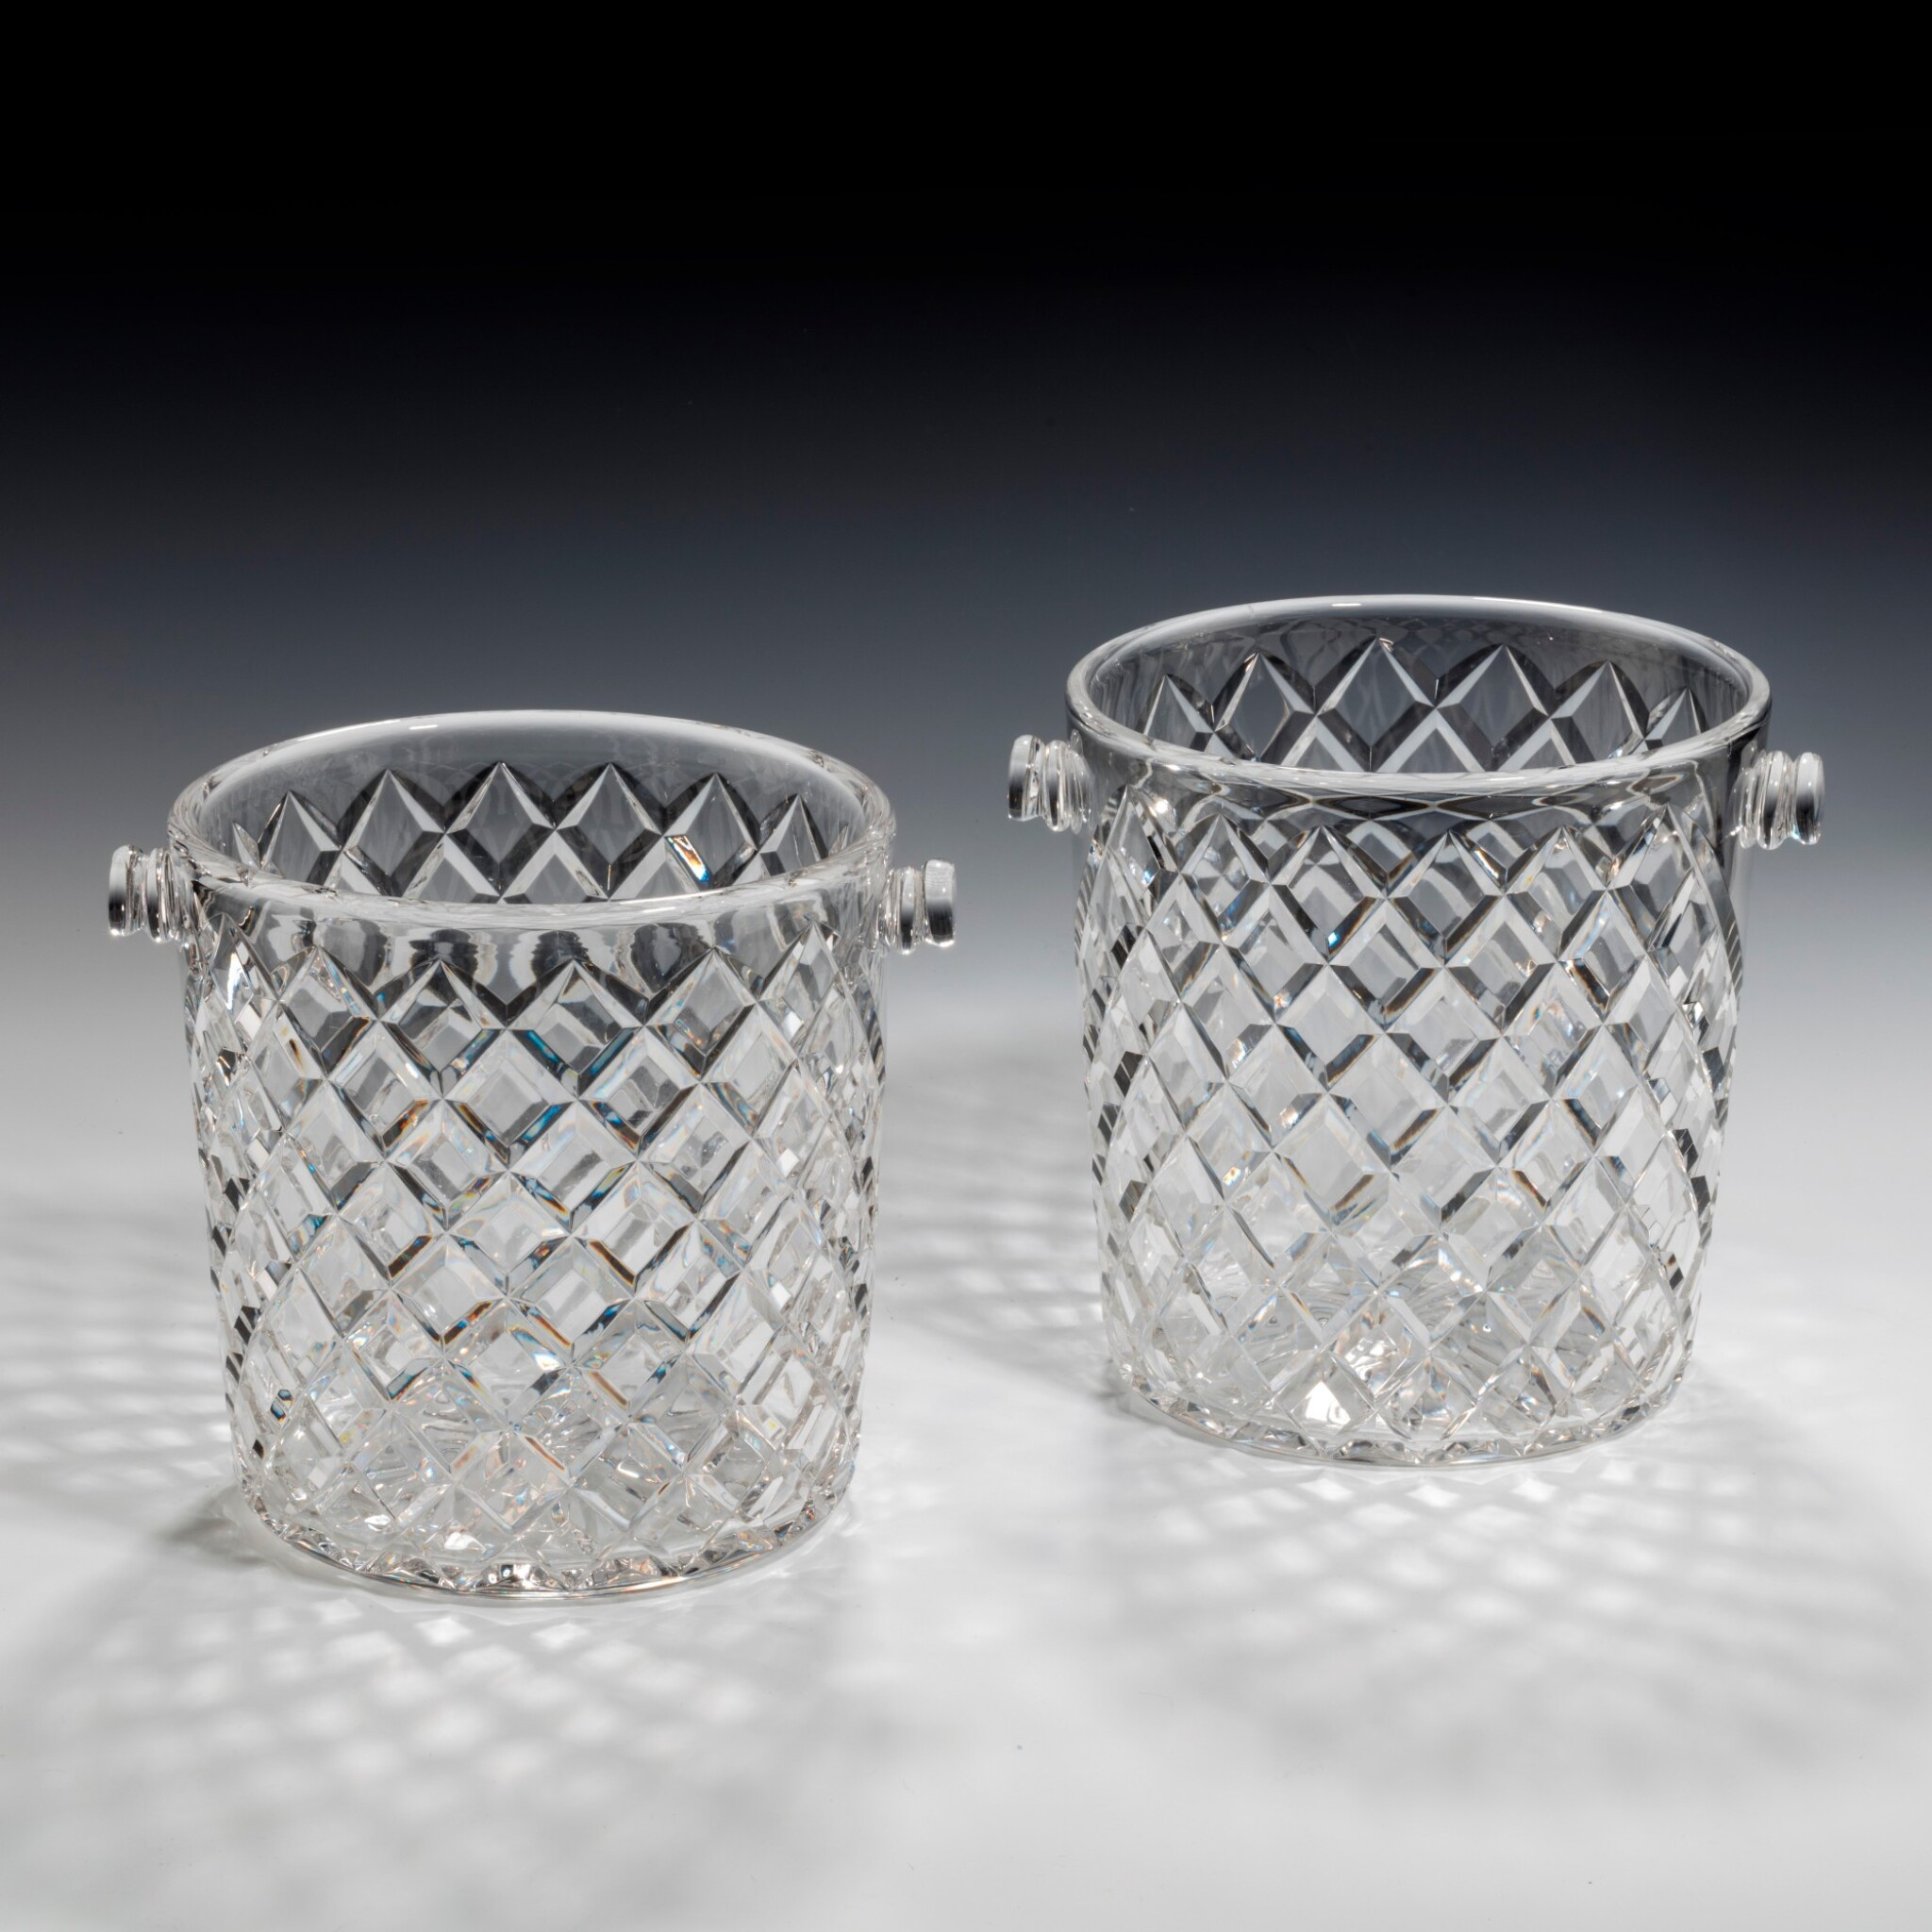 View full screen - View 1 of Lot 99. A NEAR PAIR OF GLASS CHAMPAGNE BUCKETS, 20TH CENTURY.